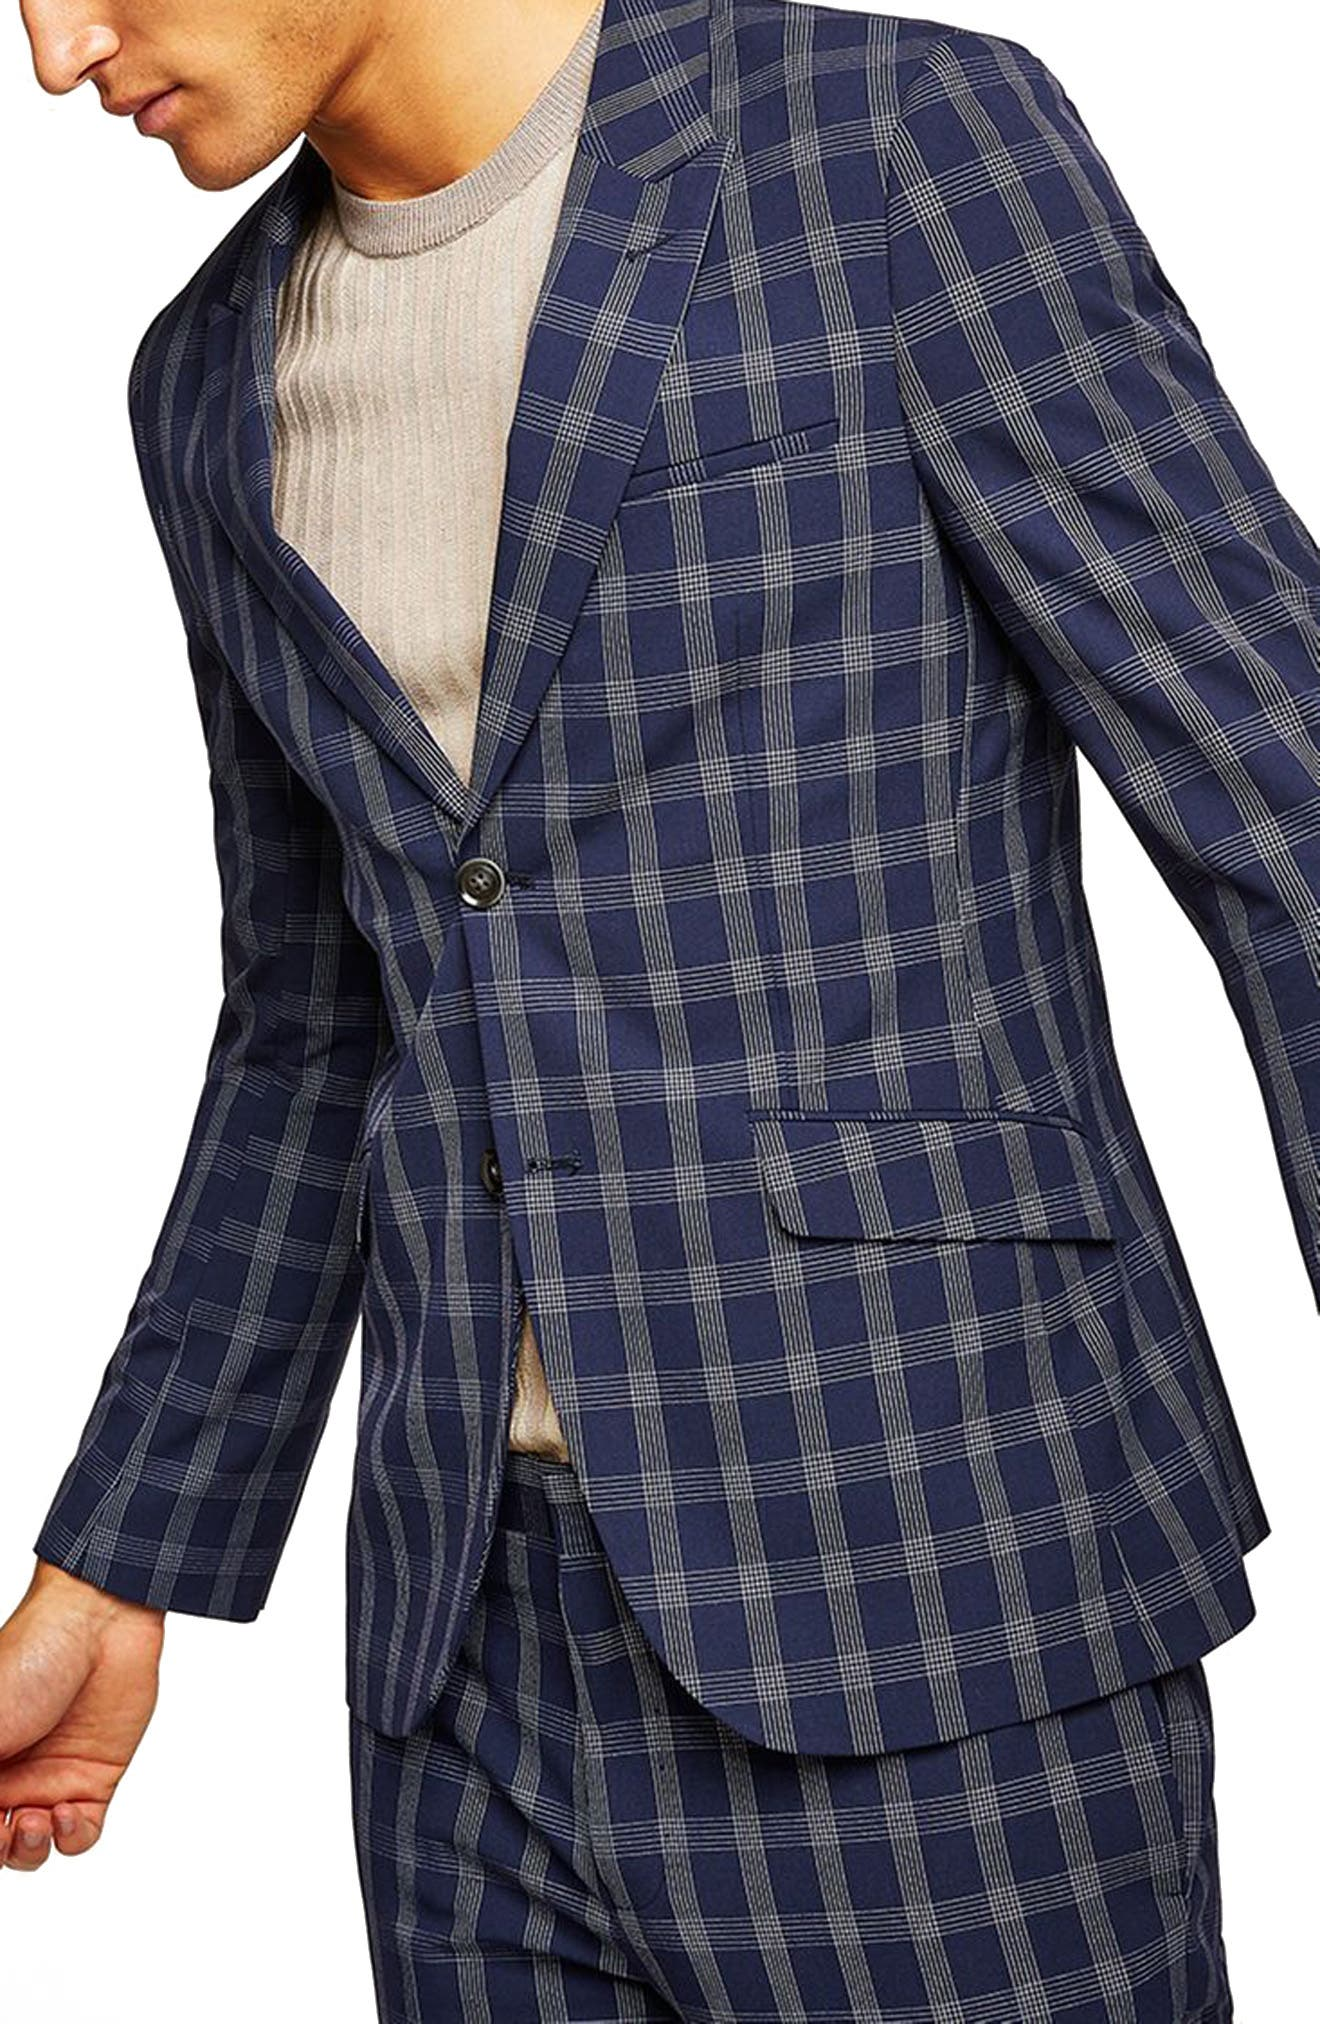 Muscle Fit Check Suit Jacket,                         Main,                         color, NAVY BLUE MULTI